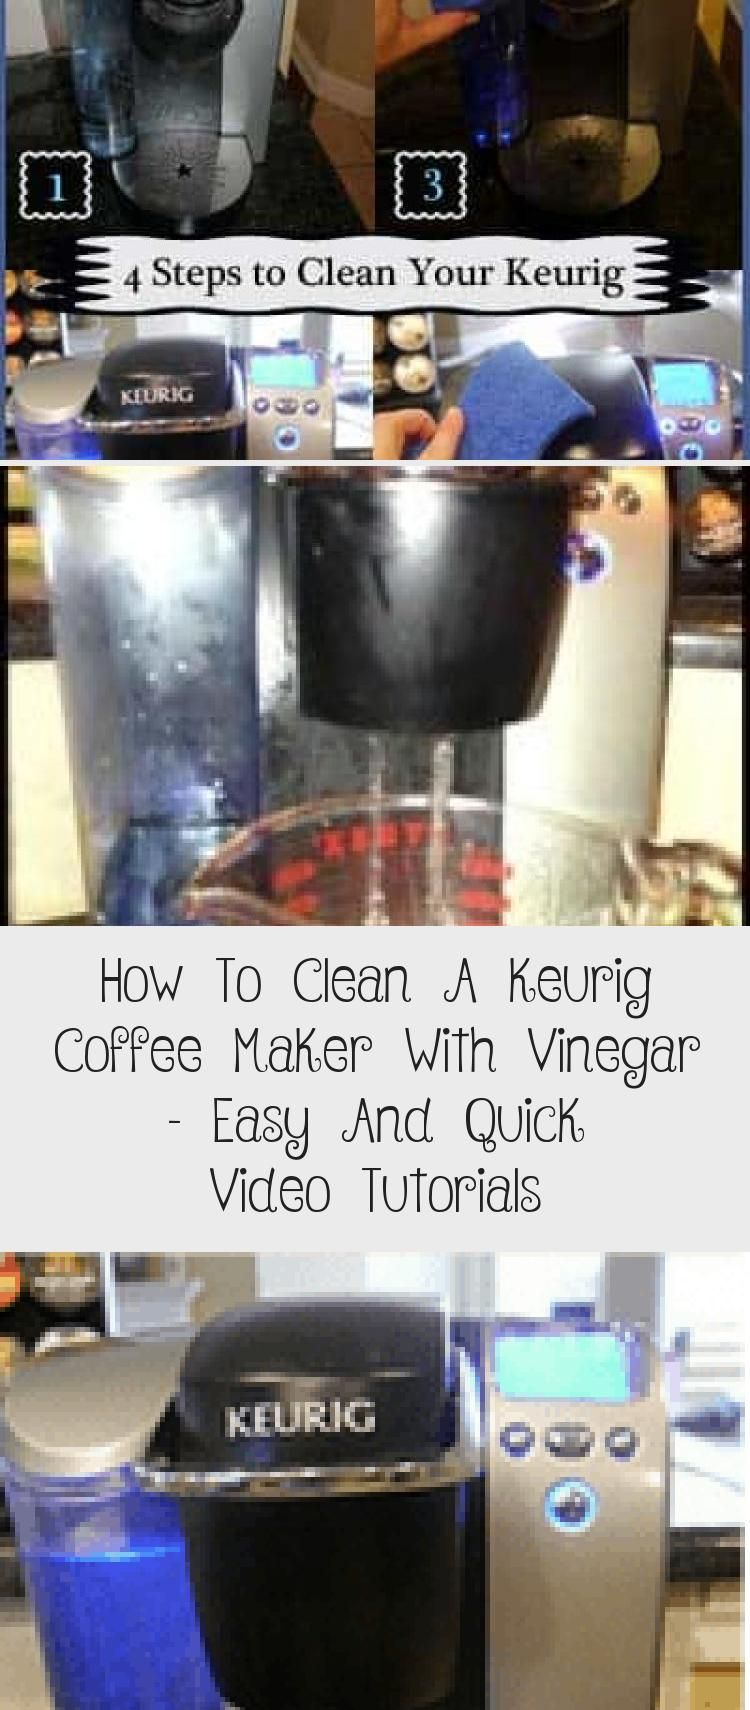 How to clean a keurig coffee maker with vinegar easy and